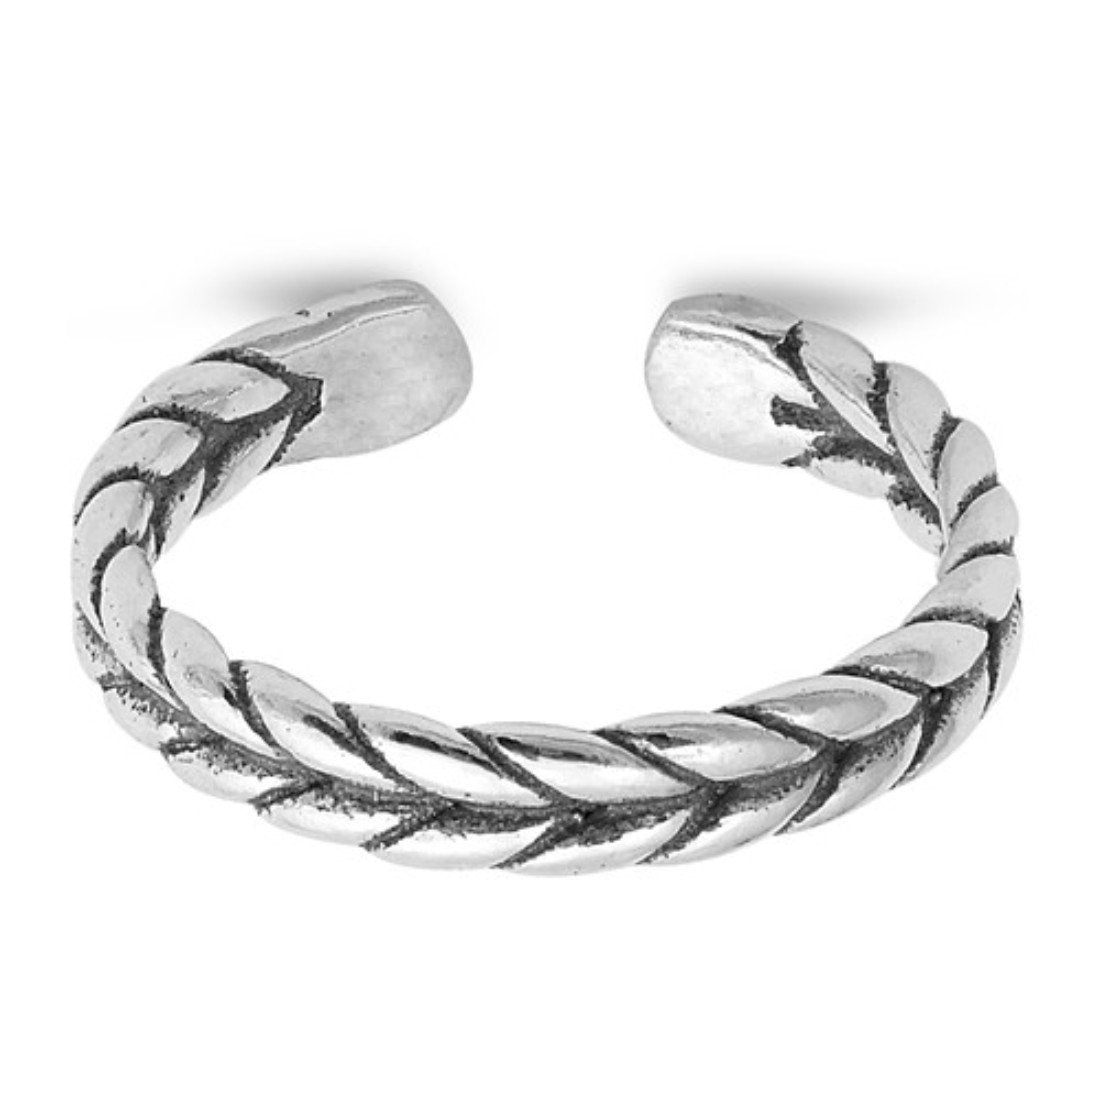 Braid Adjustable Silver Toe Ring Band 925 Sterling Silver (3mm)